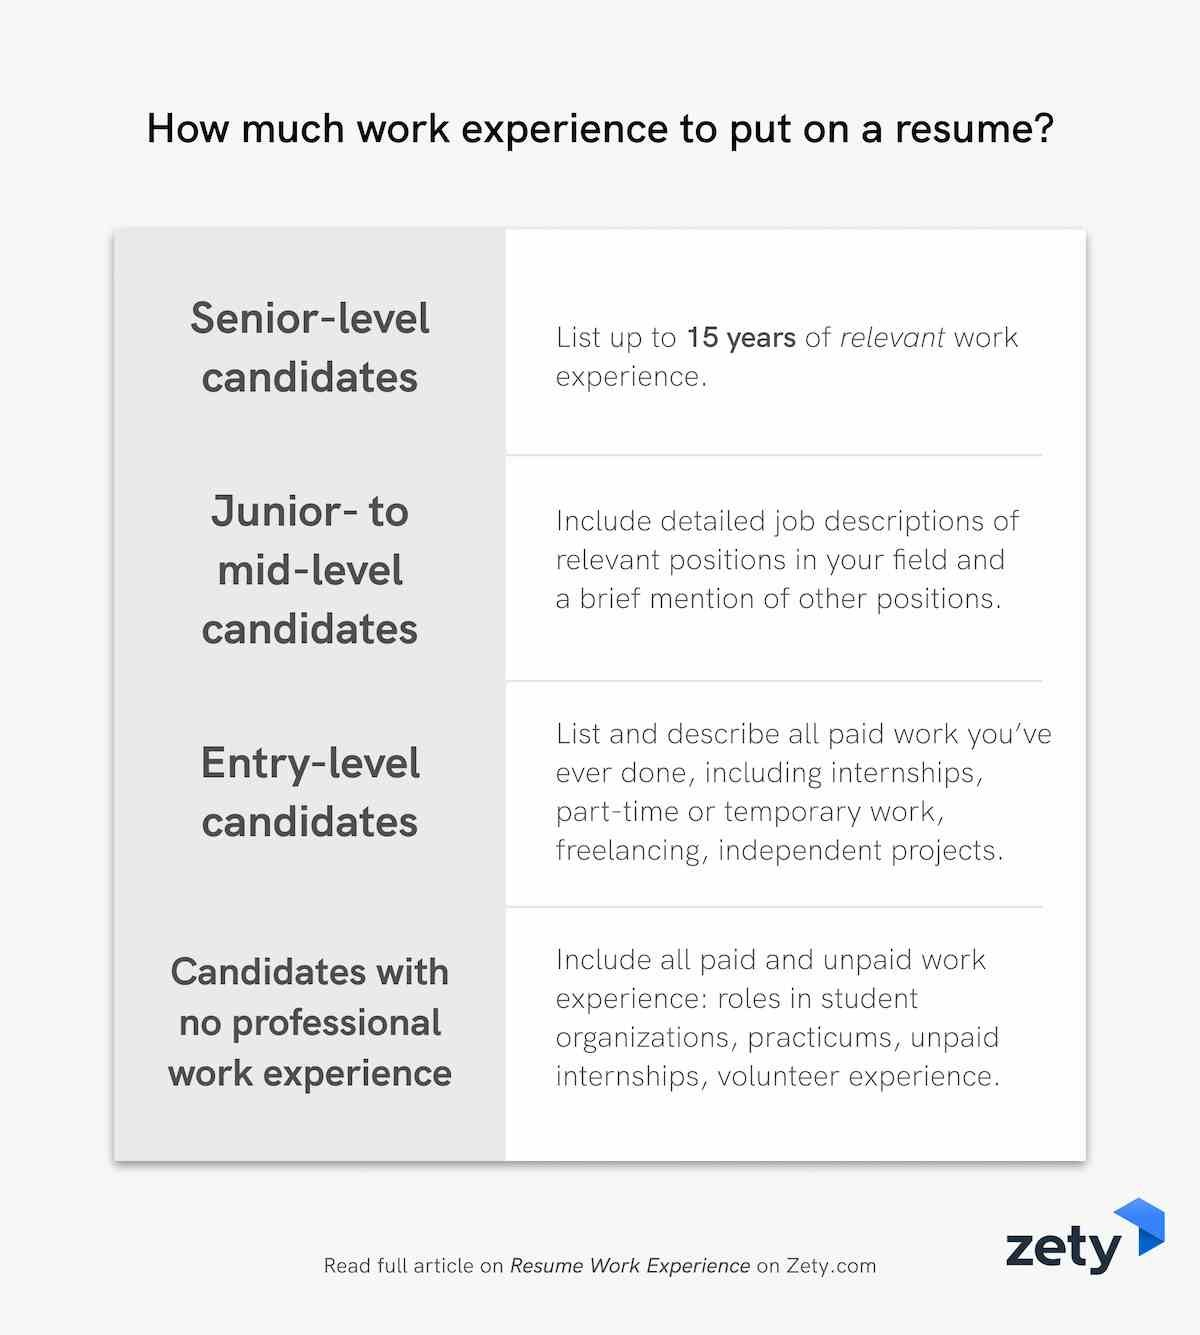 resume work experience history example job descriptions description much to put on church Resume Resume Work Experience Description